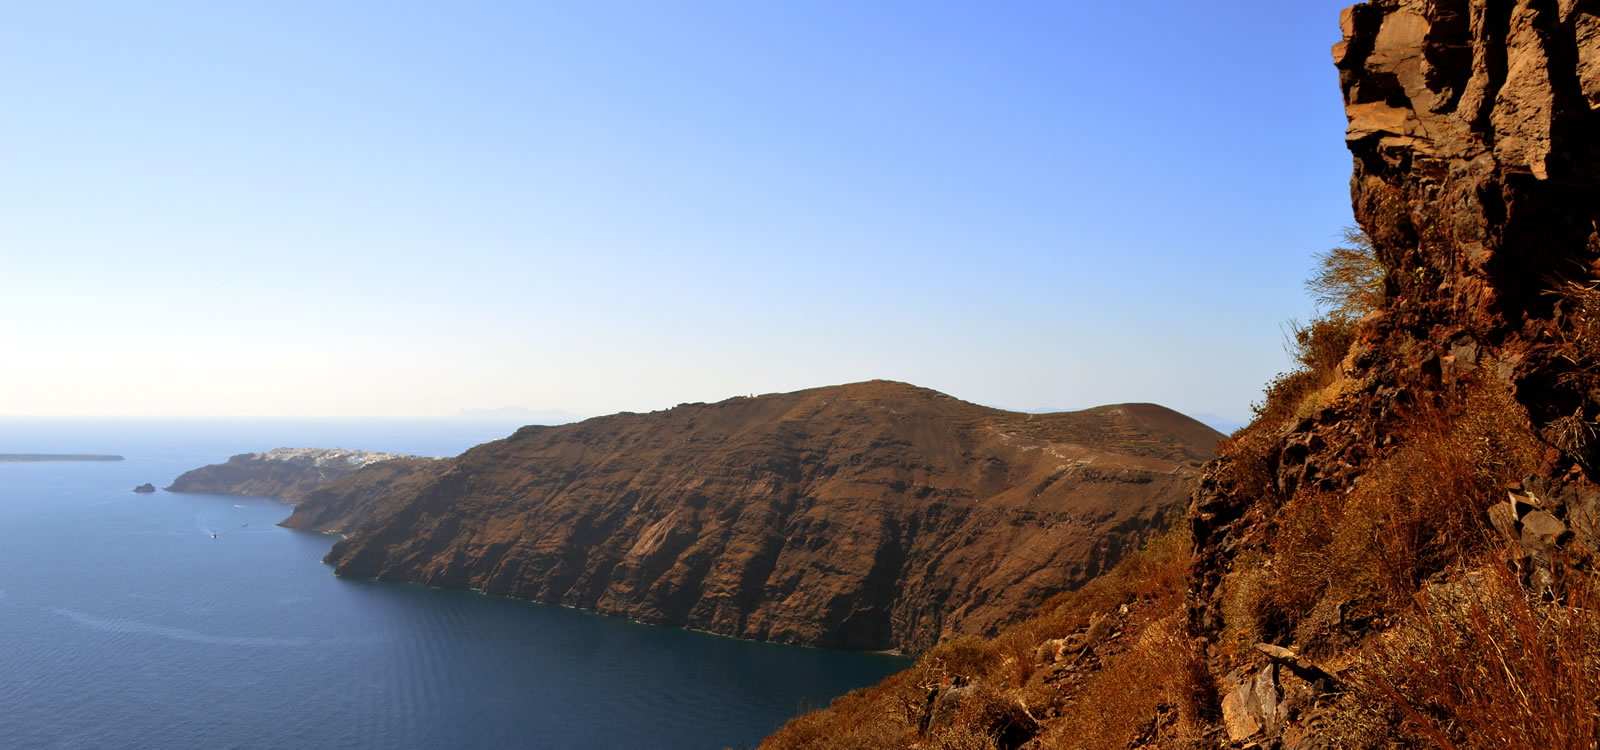 Private tours in Santorini with local guides